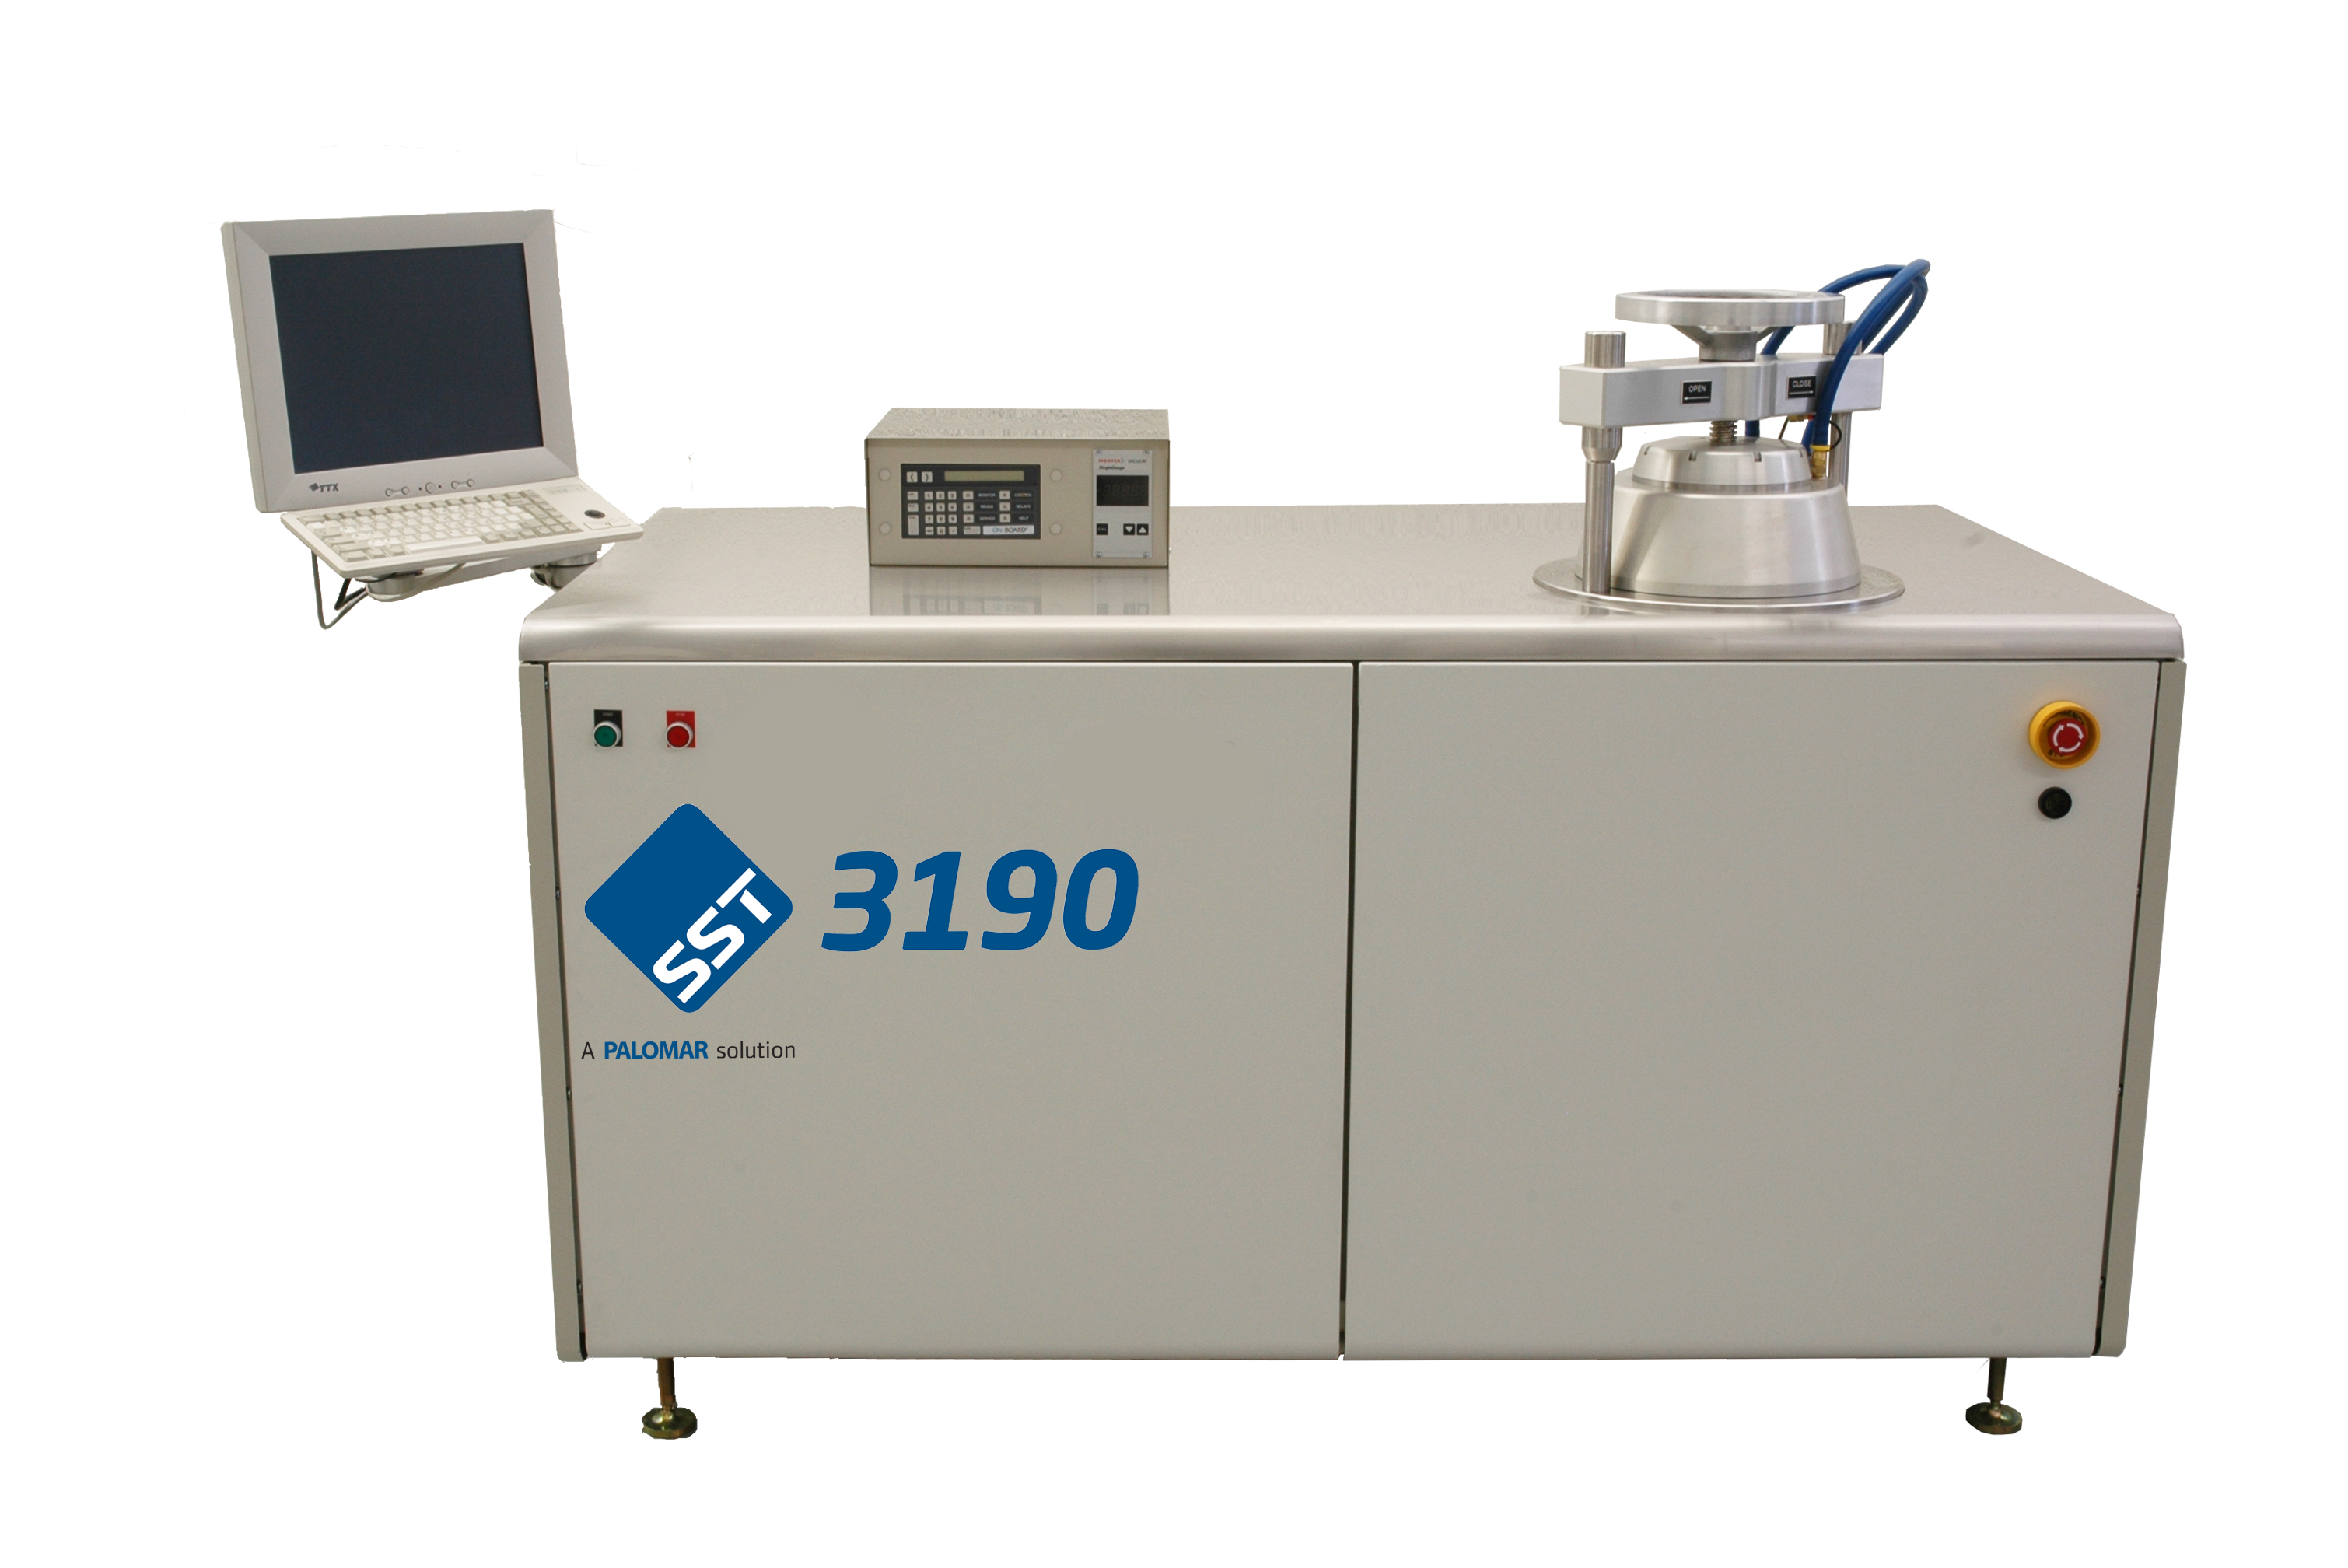 3190 High Vacuum Wafer Bonder